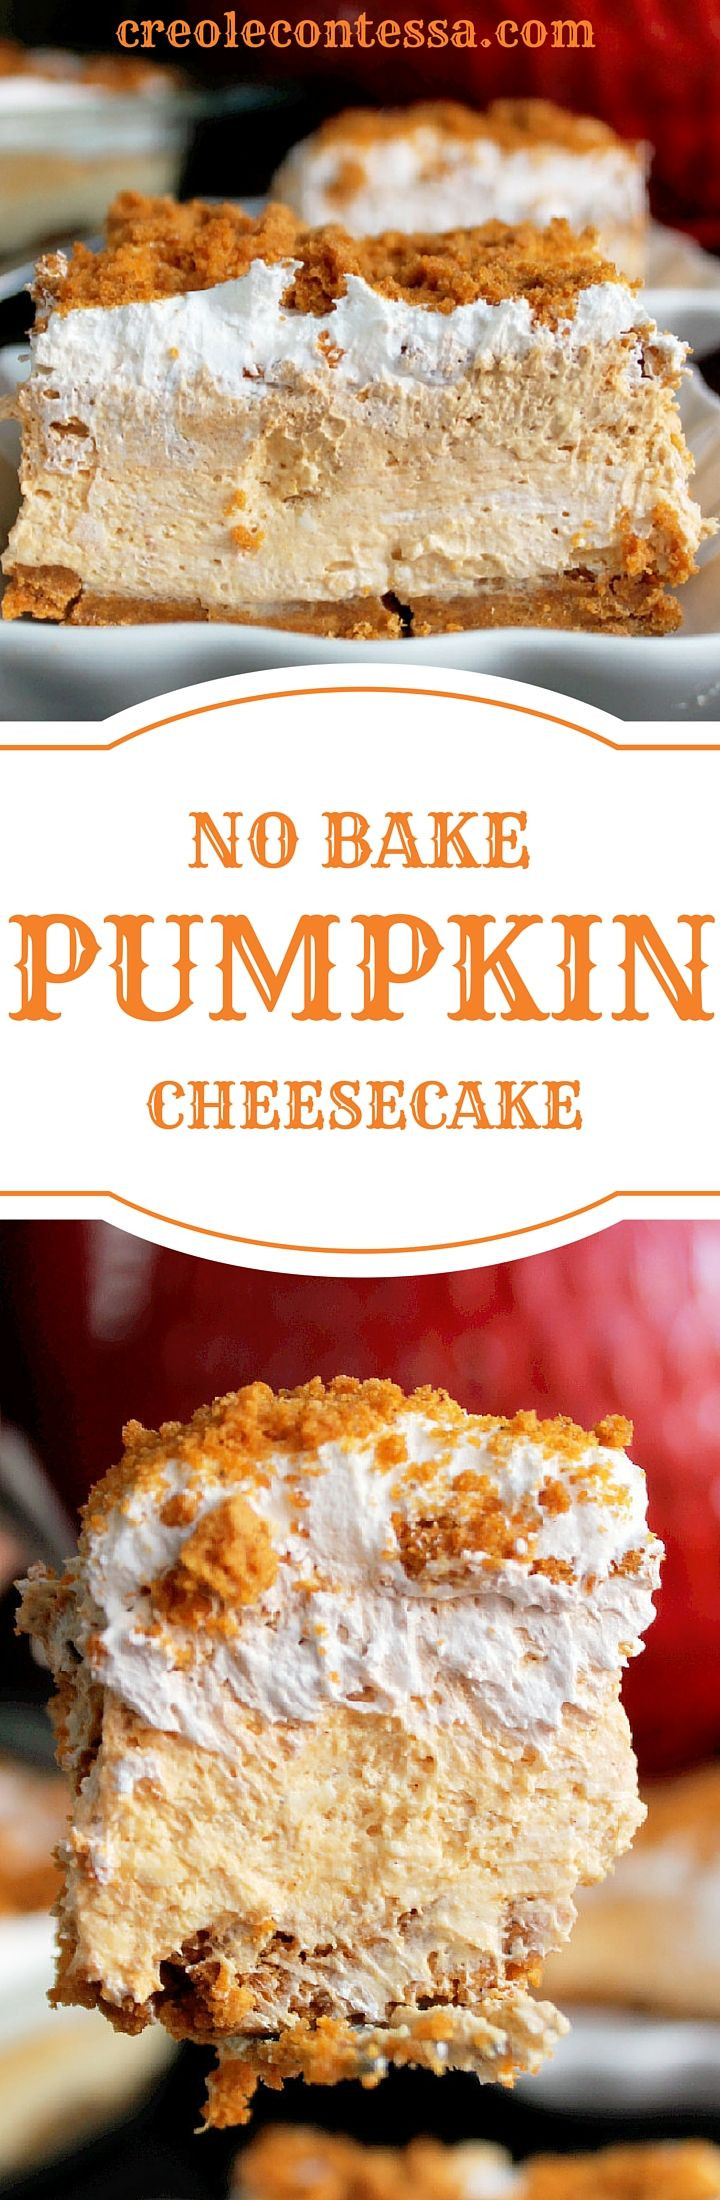 No Bake Pumpkin Cheesecake Lasagna-Creole Contessa